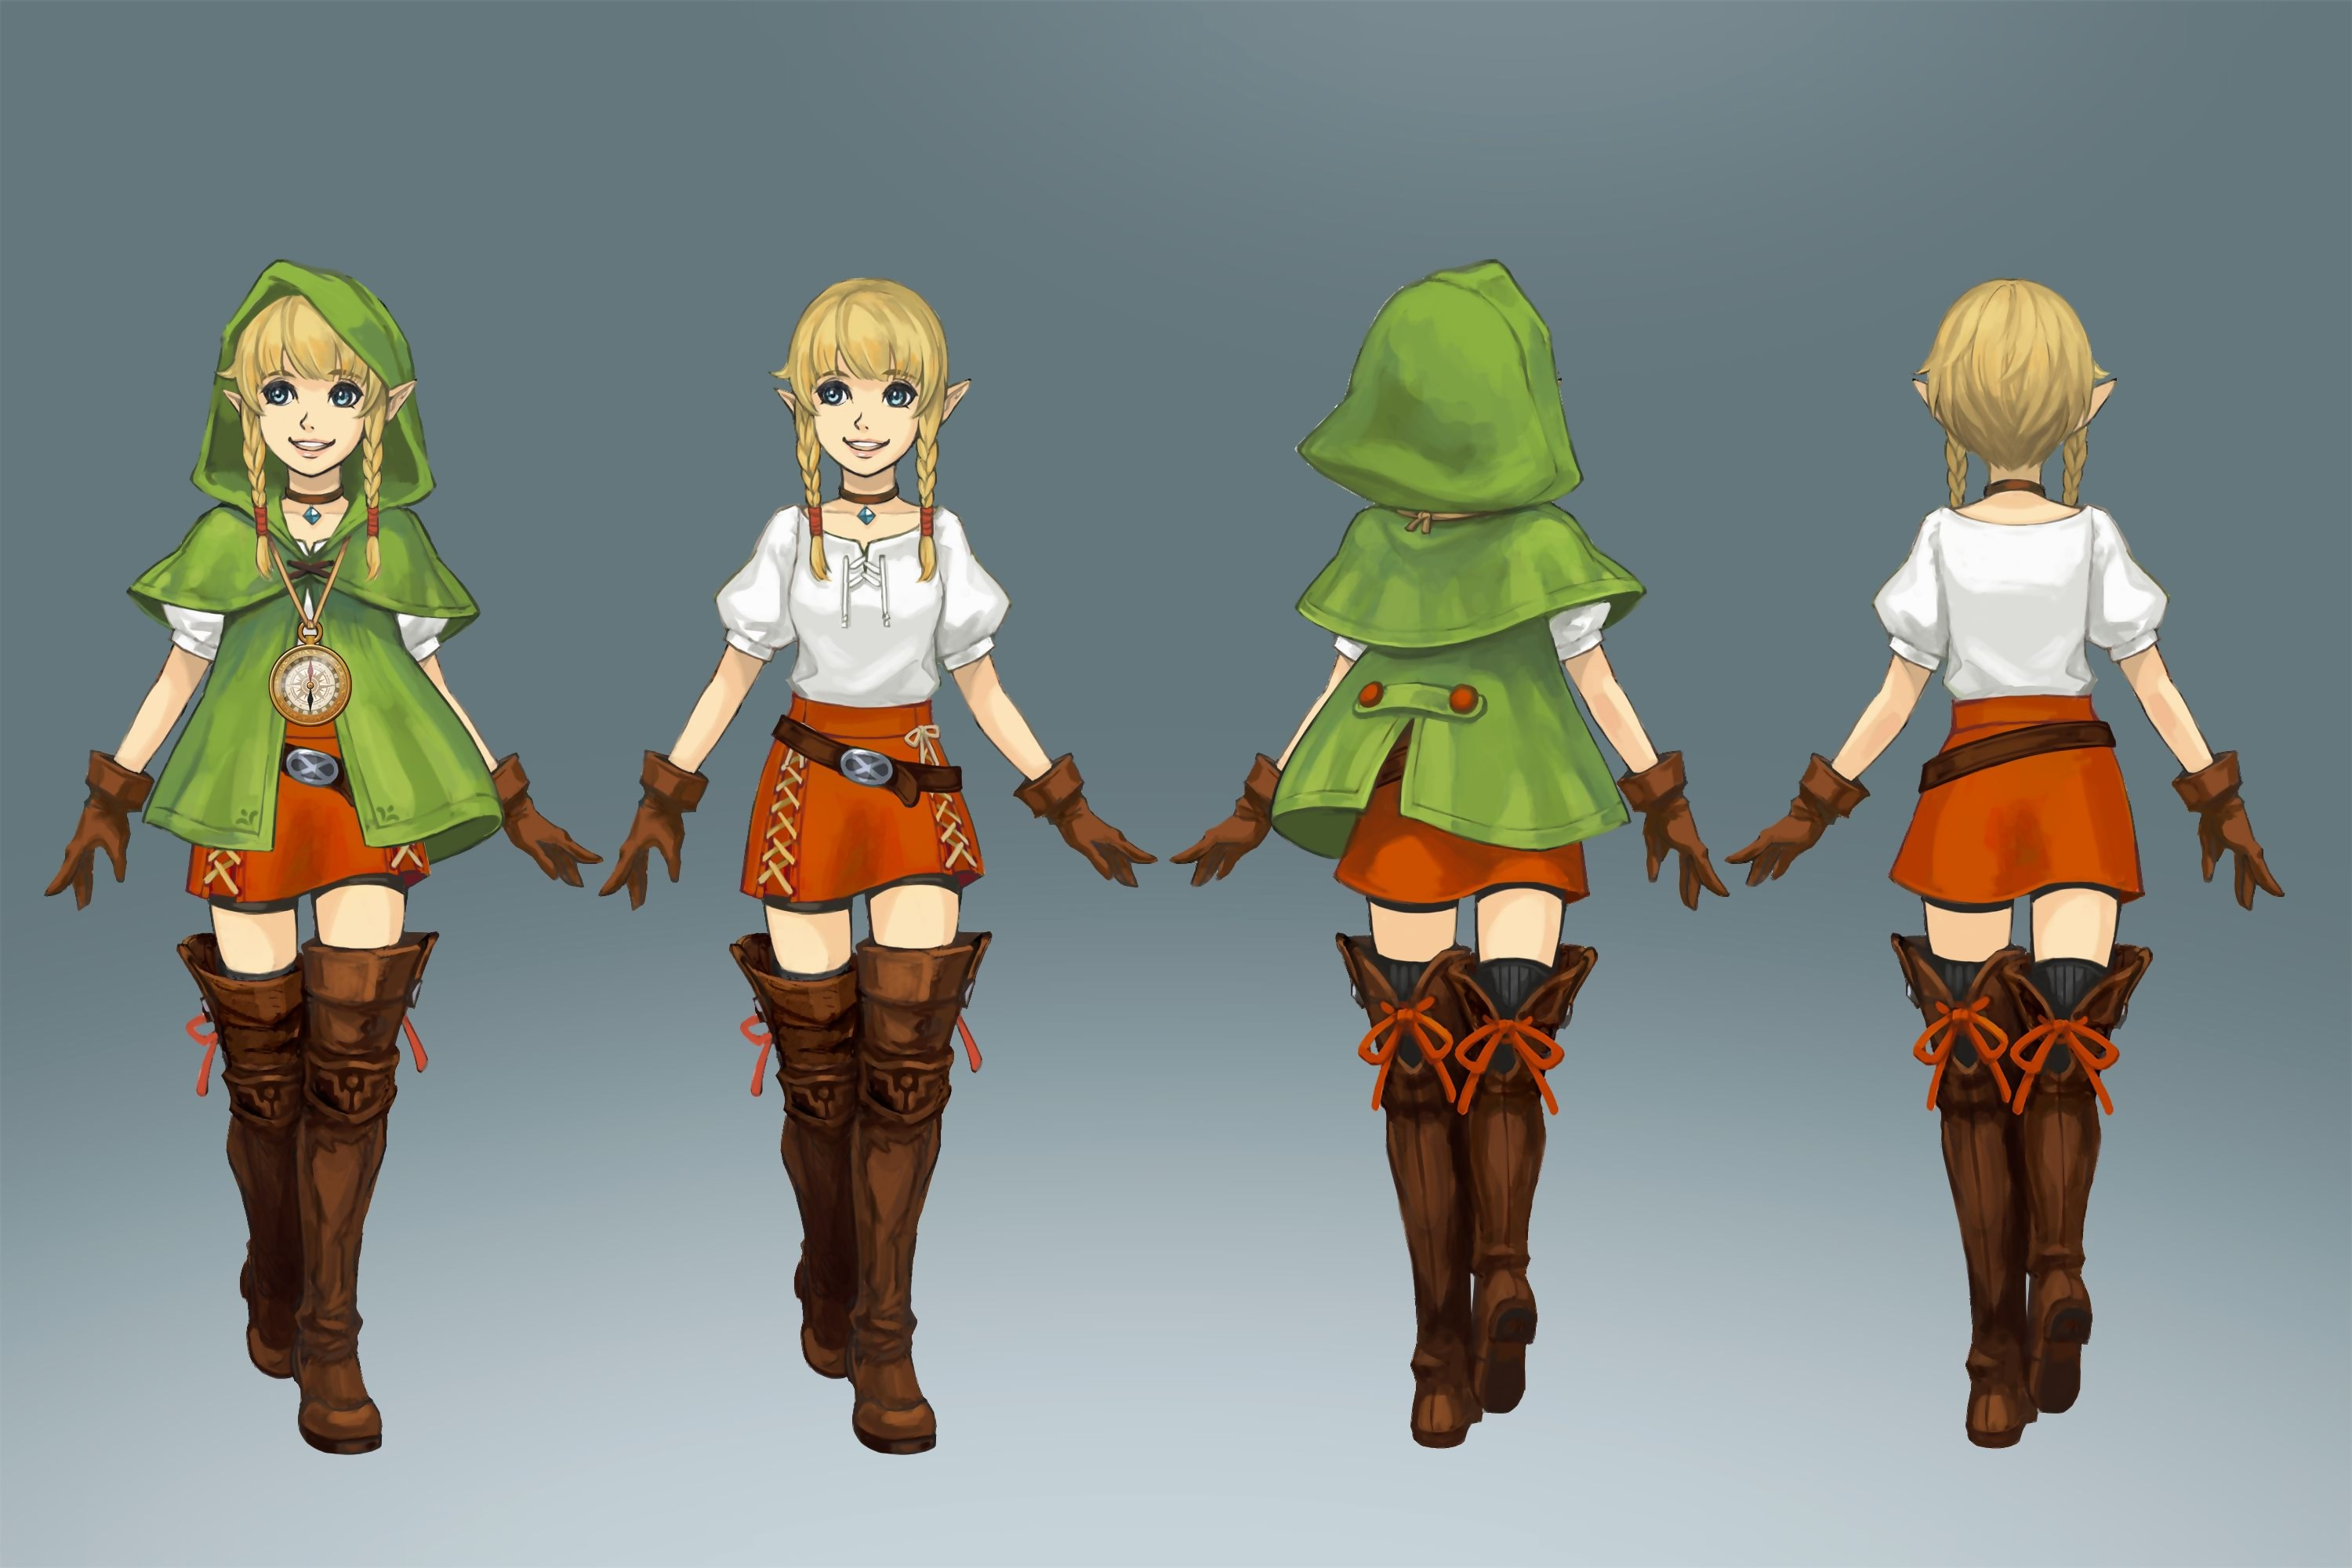 Linkle Cosplay Costume from Hyrule Warriors Legends